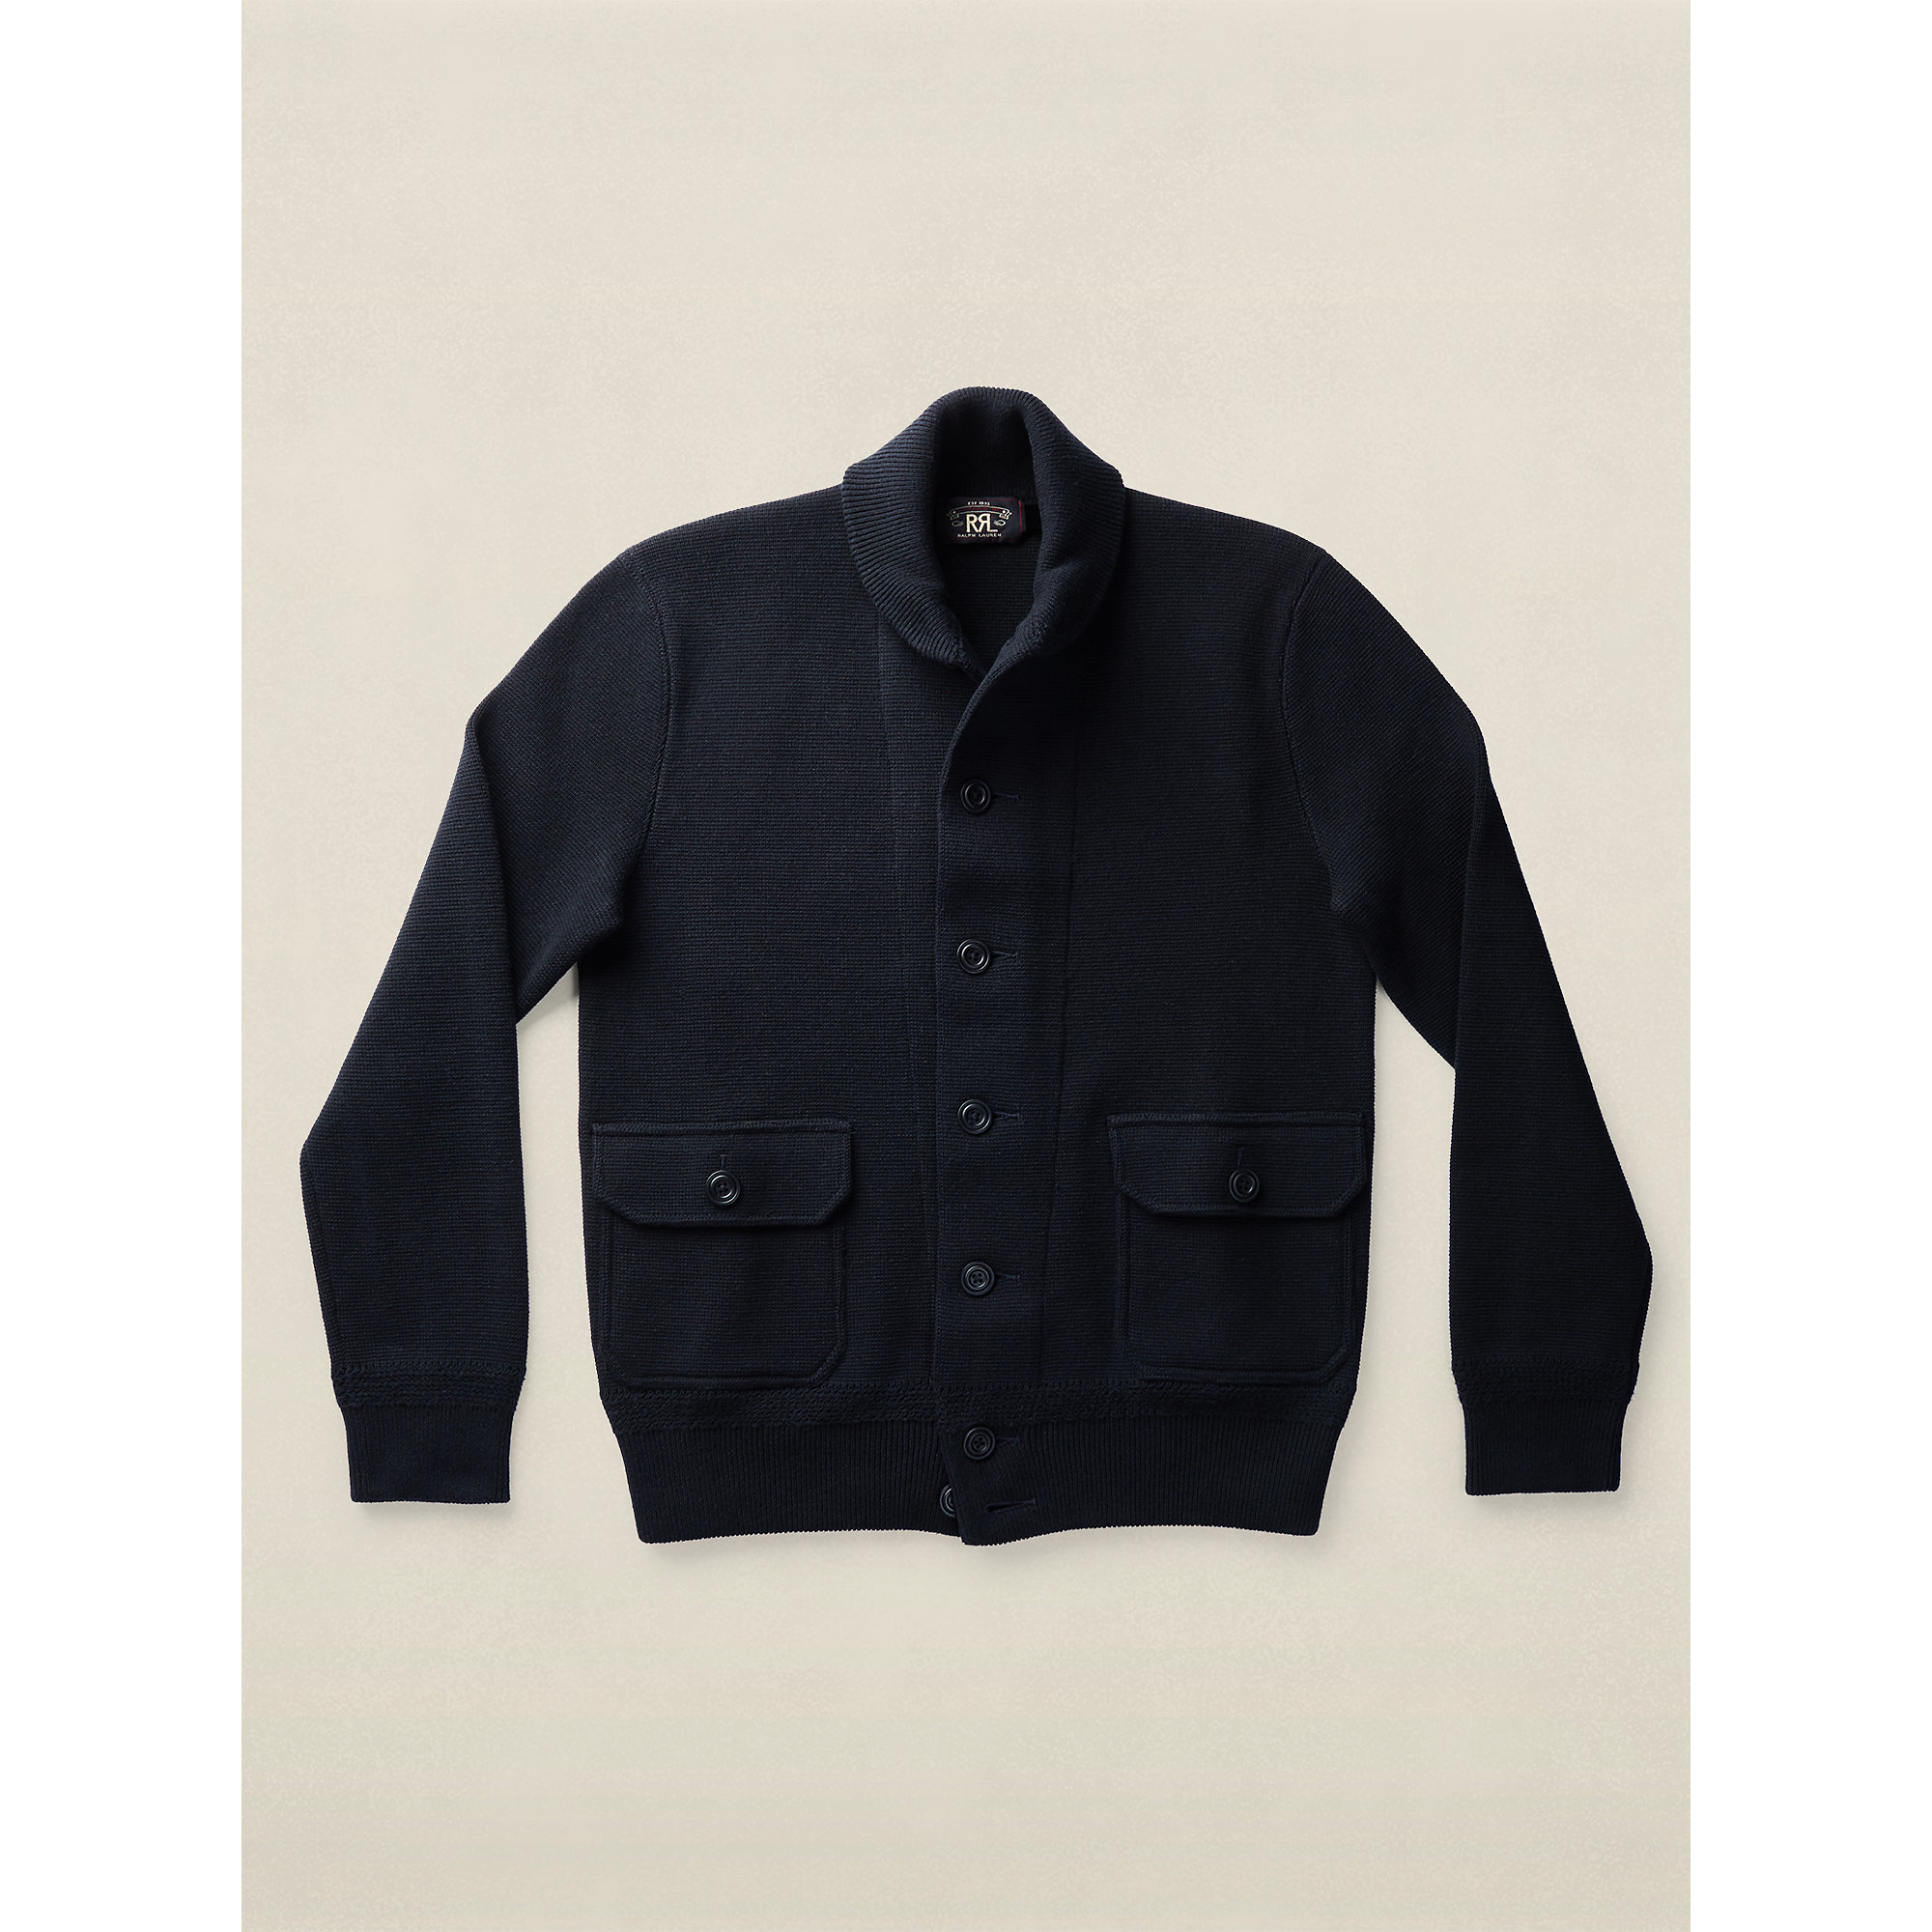 Rrl Cotton Sweater Jacket in Black for Men | Lyst